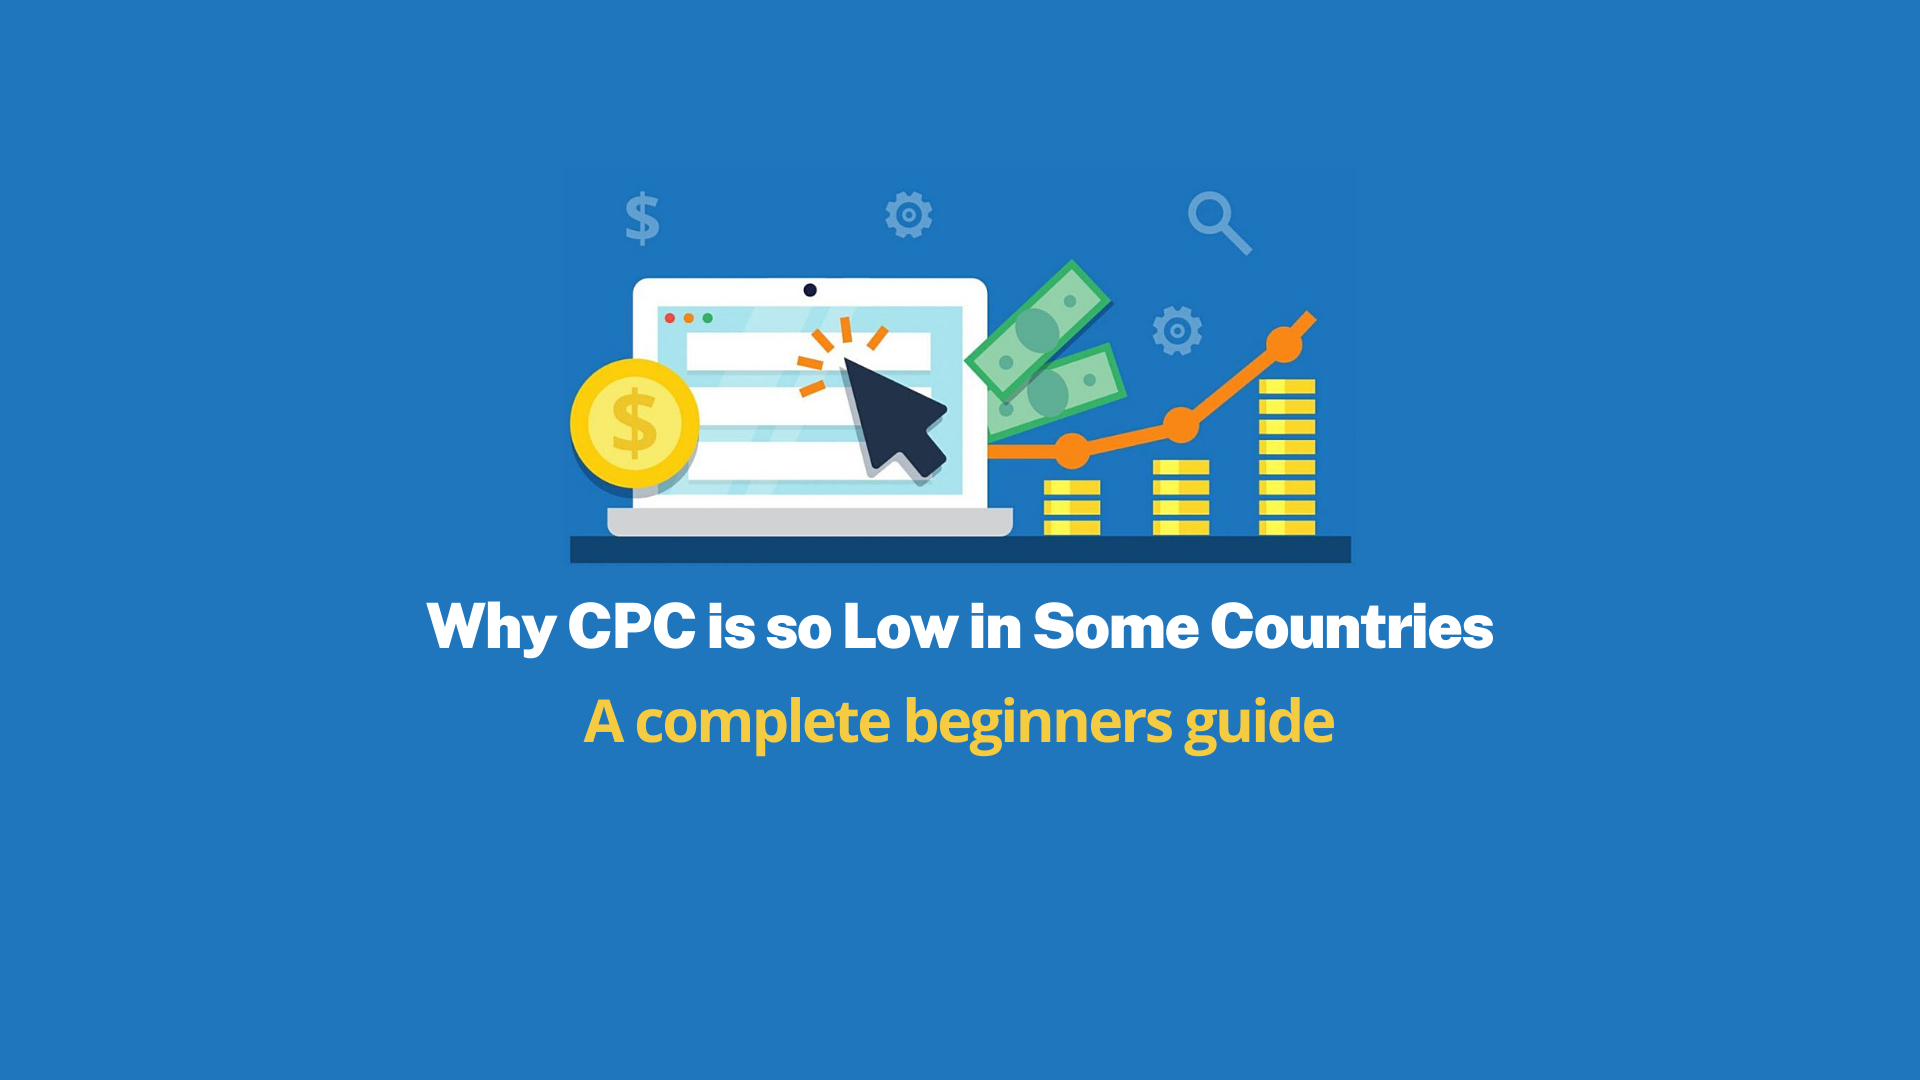 Why is CPC Low in Some Countries?